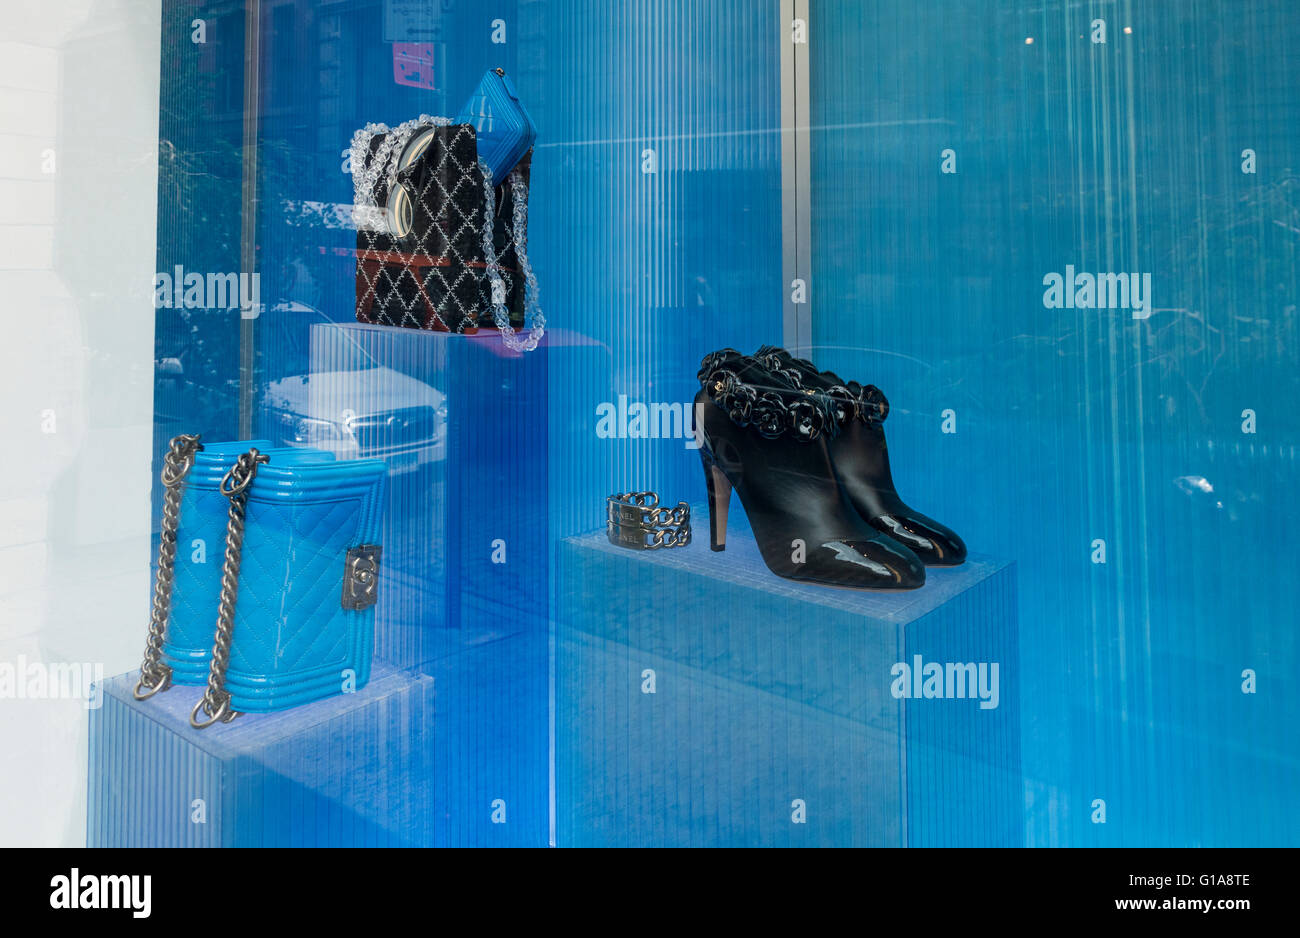 Upmarket items for sale at a chic boutique in New York City - Stock Image